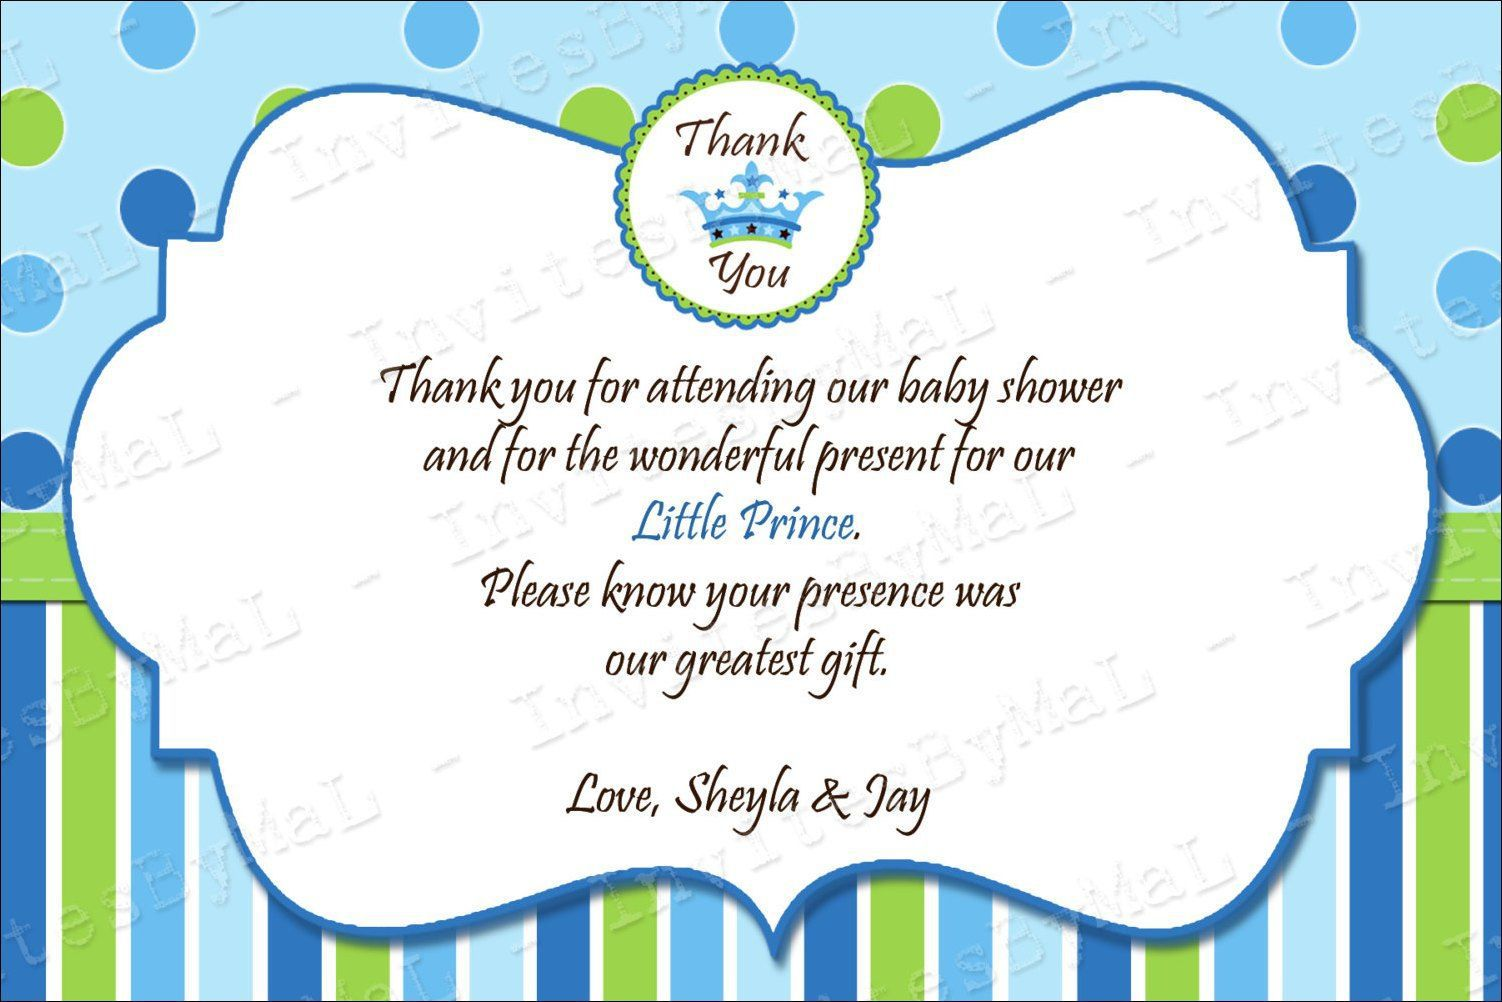 008 Shocking Thank You Note Template Baby Shower Concept  Card Free Sample For Letter GiftFull